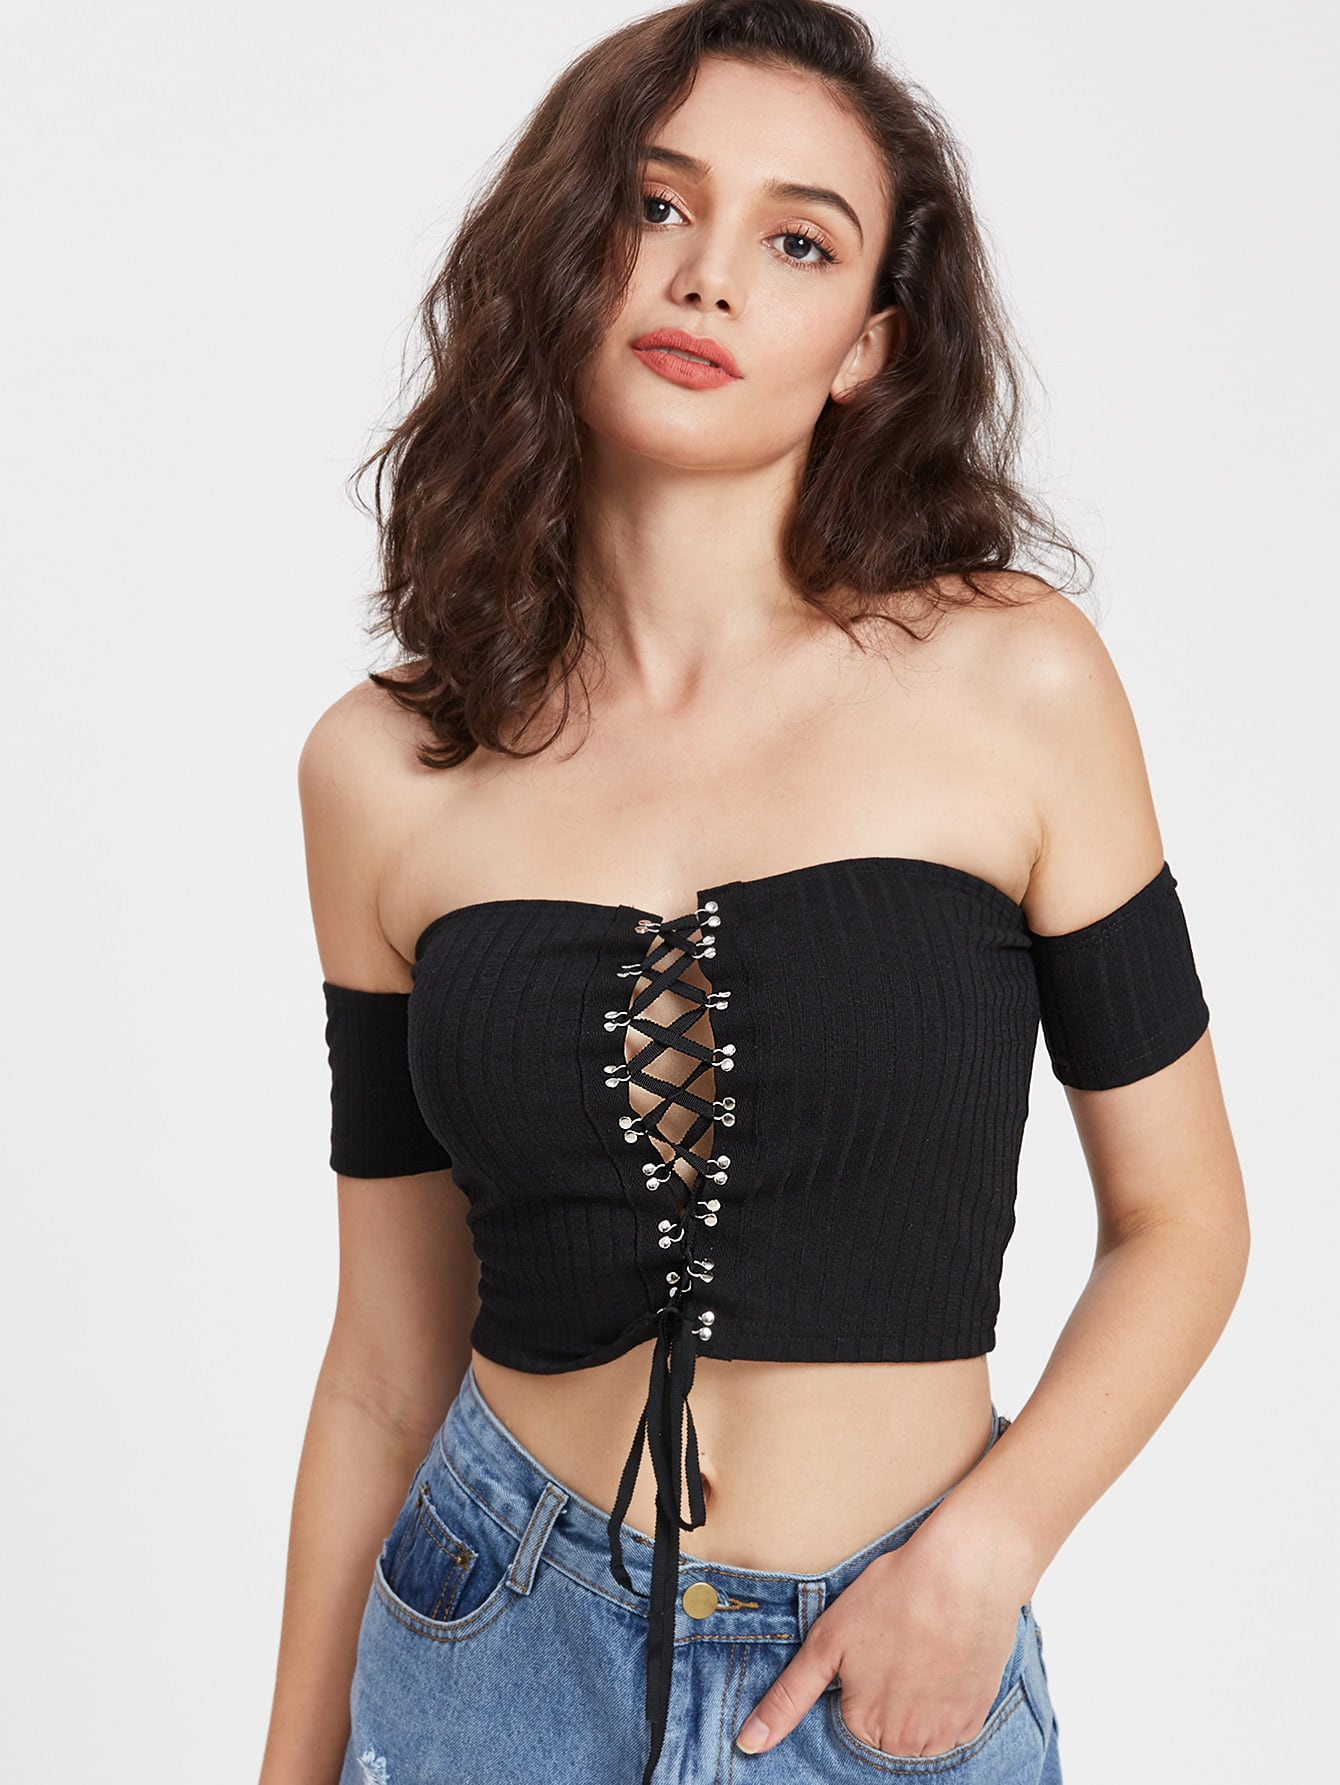 Lace Up Off Shoulder Ribbed Crop T-shirt tee170313706